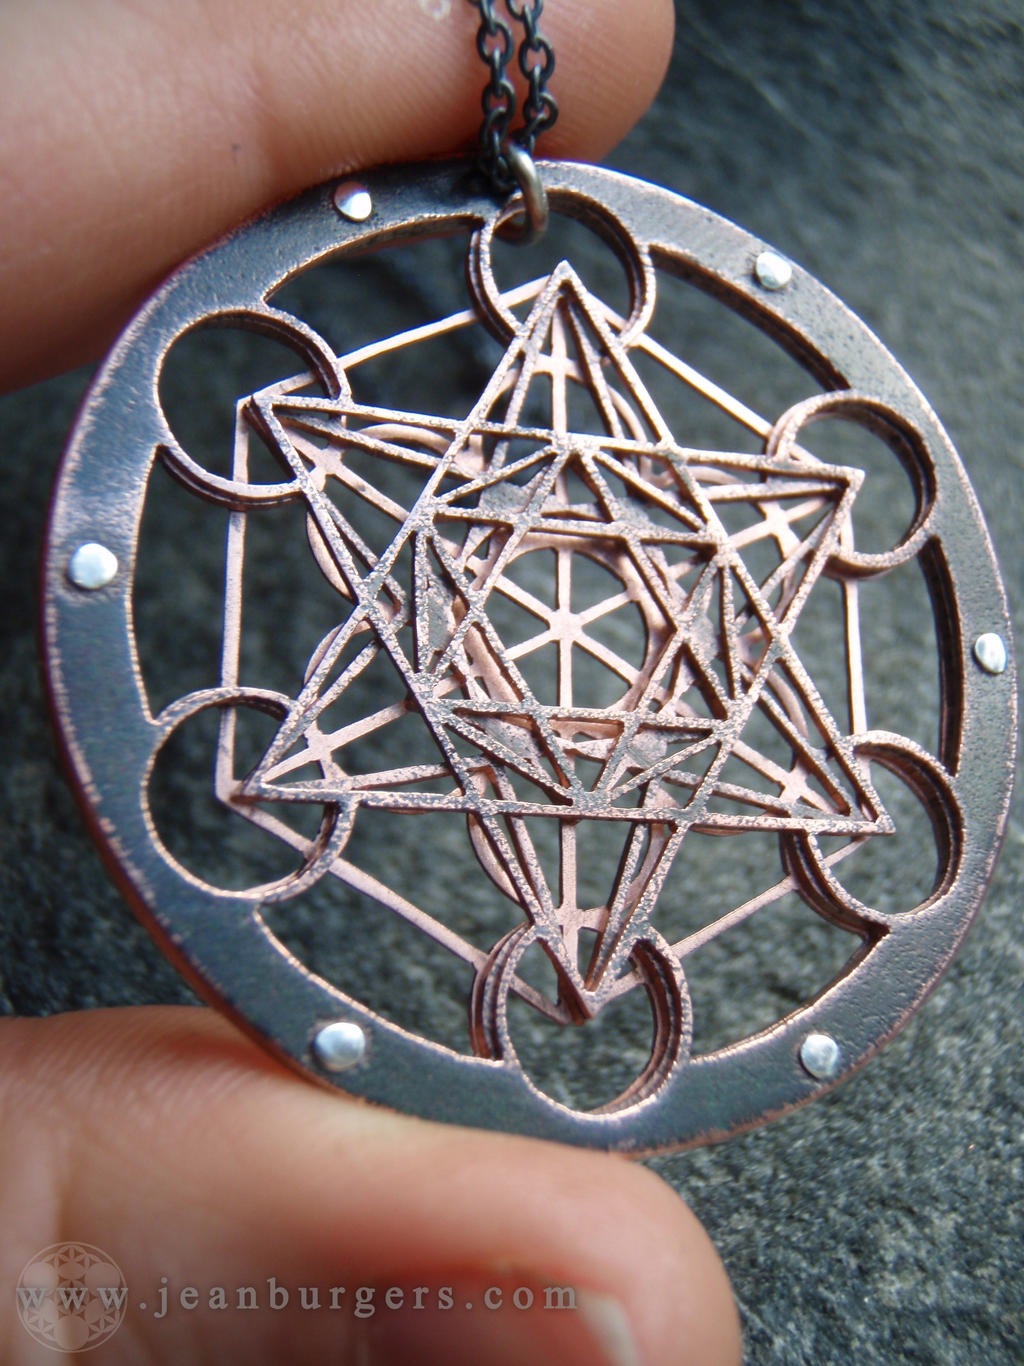 Metatron 39 s cube multilayered pendant by jeanburgers on for Metatron s cube jewelry